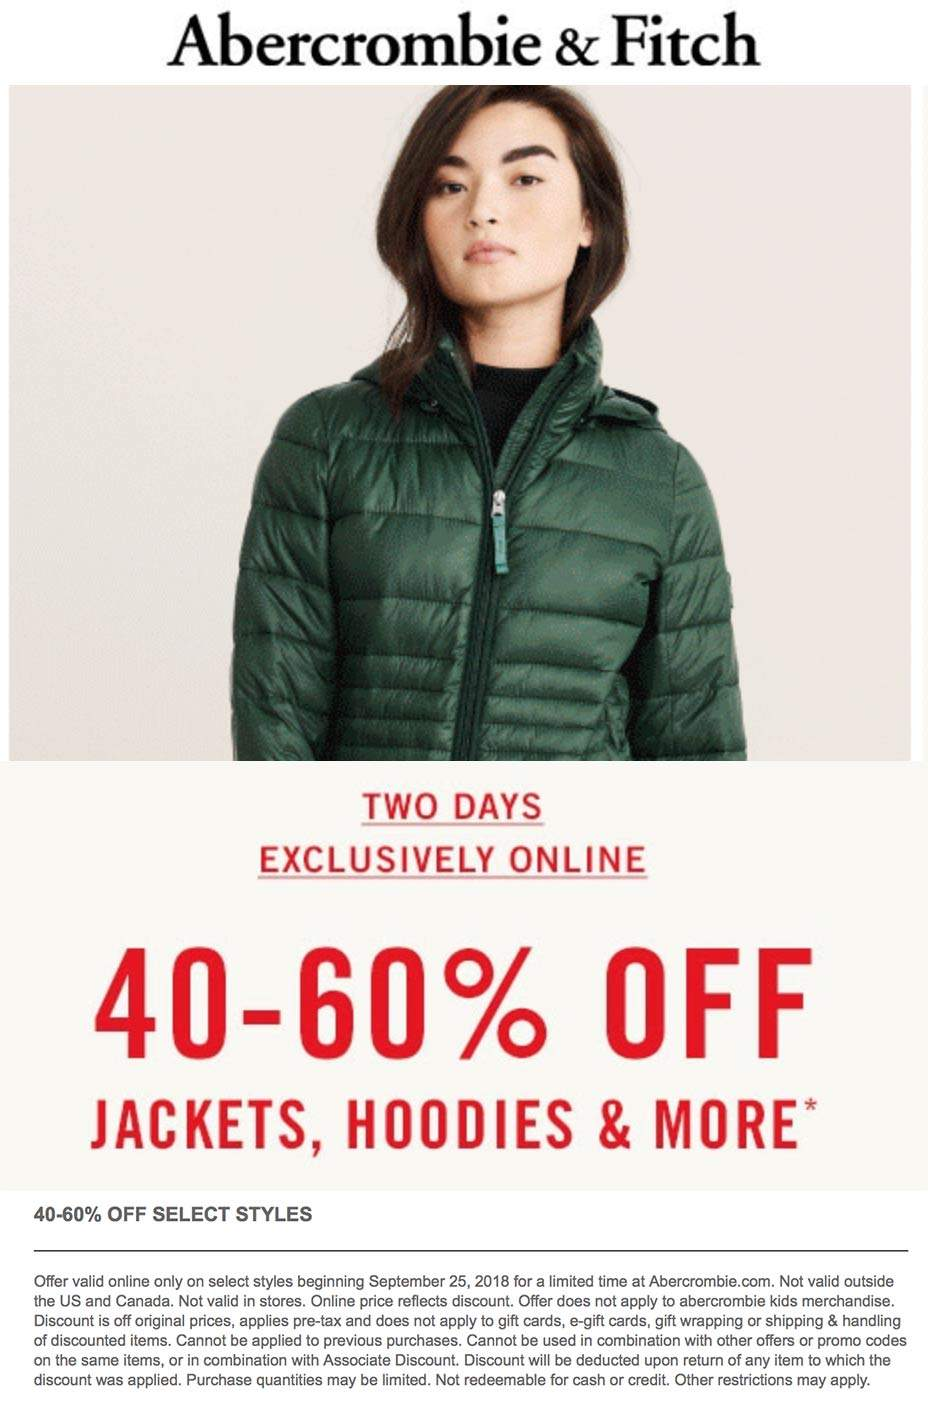 Abercrombie & Fitch Coupon February 2020 40-60% off jackets & hoodies online today at Abercrombie & Fitch